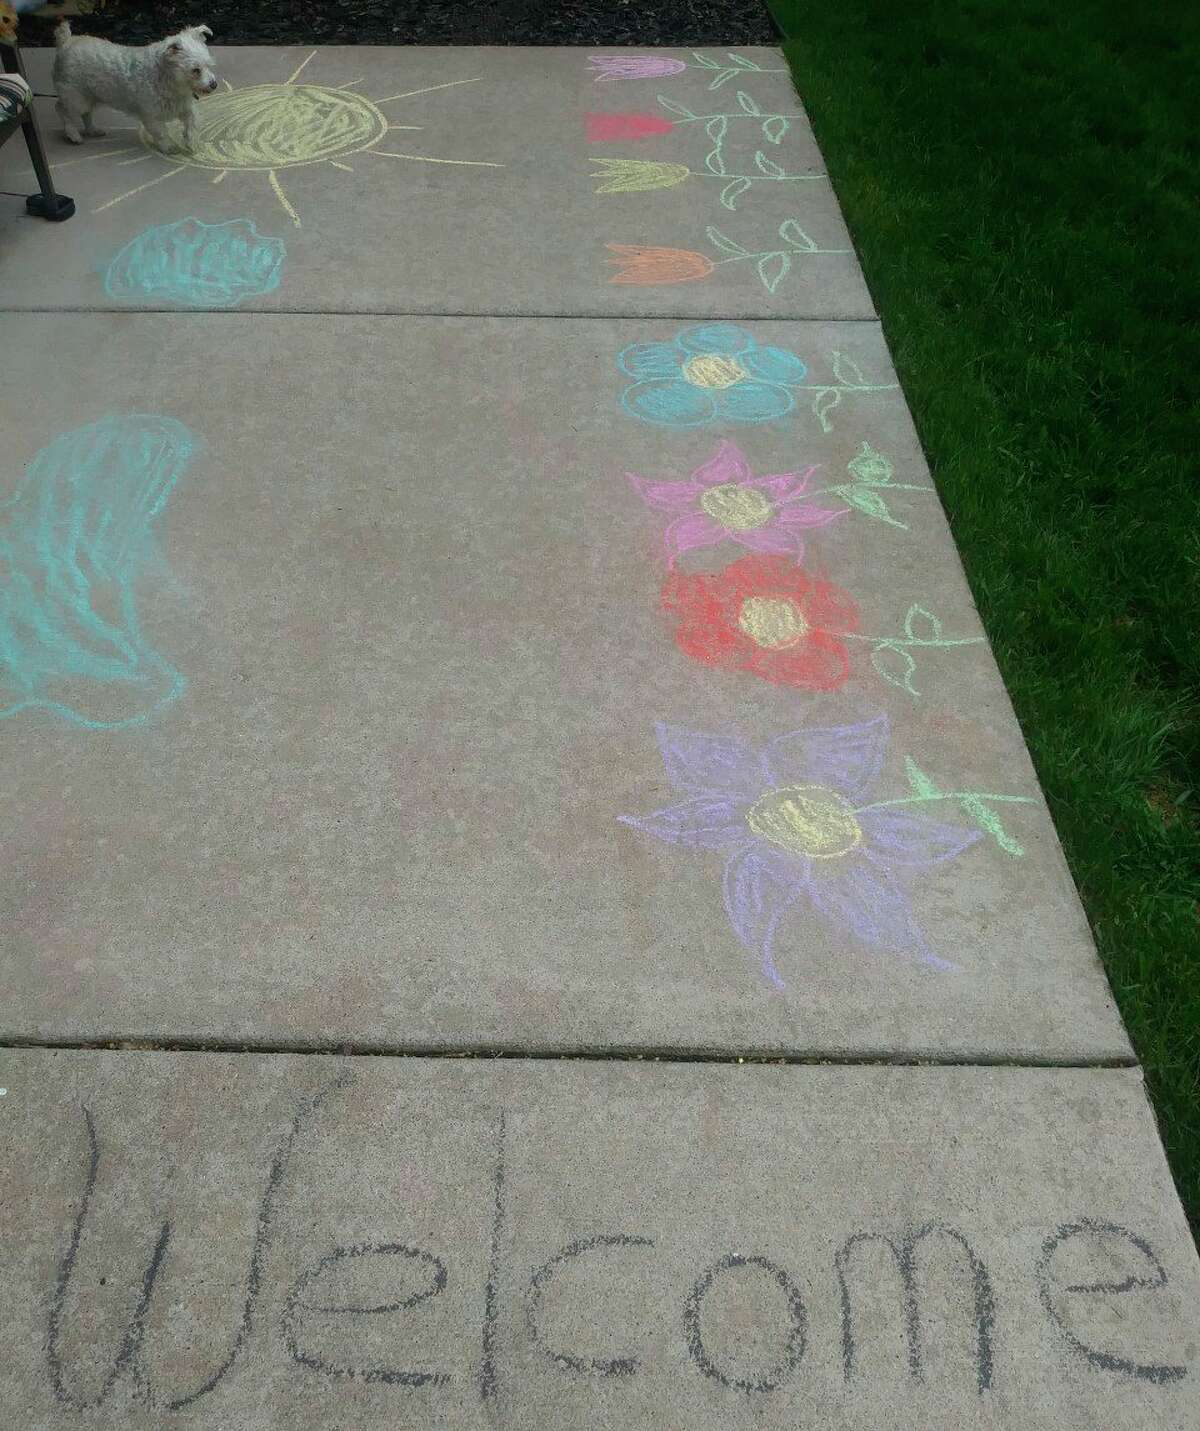 Residents of Manistee Place Apartments who created chalk drawings on Sunday will receive $10 gift cards. (Kyle Kotecki/News Advocate)